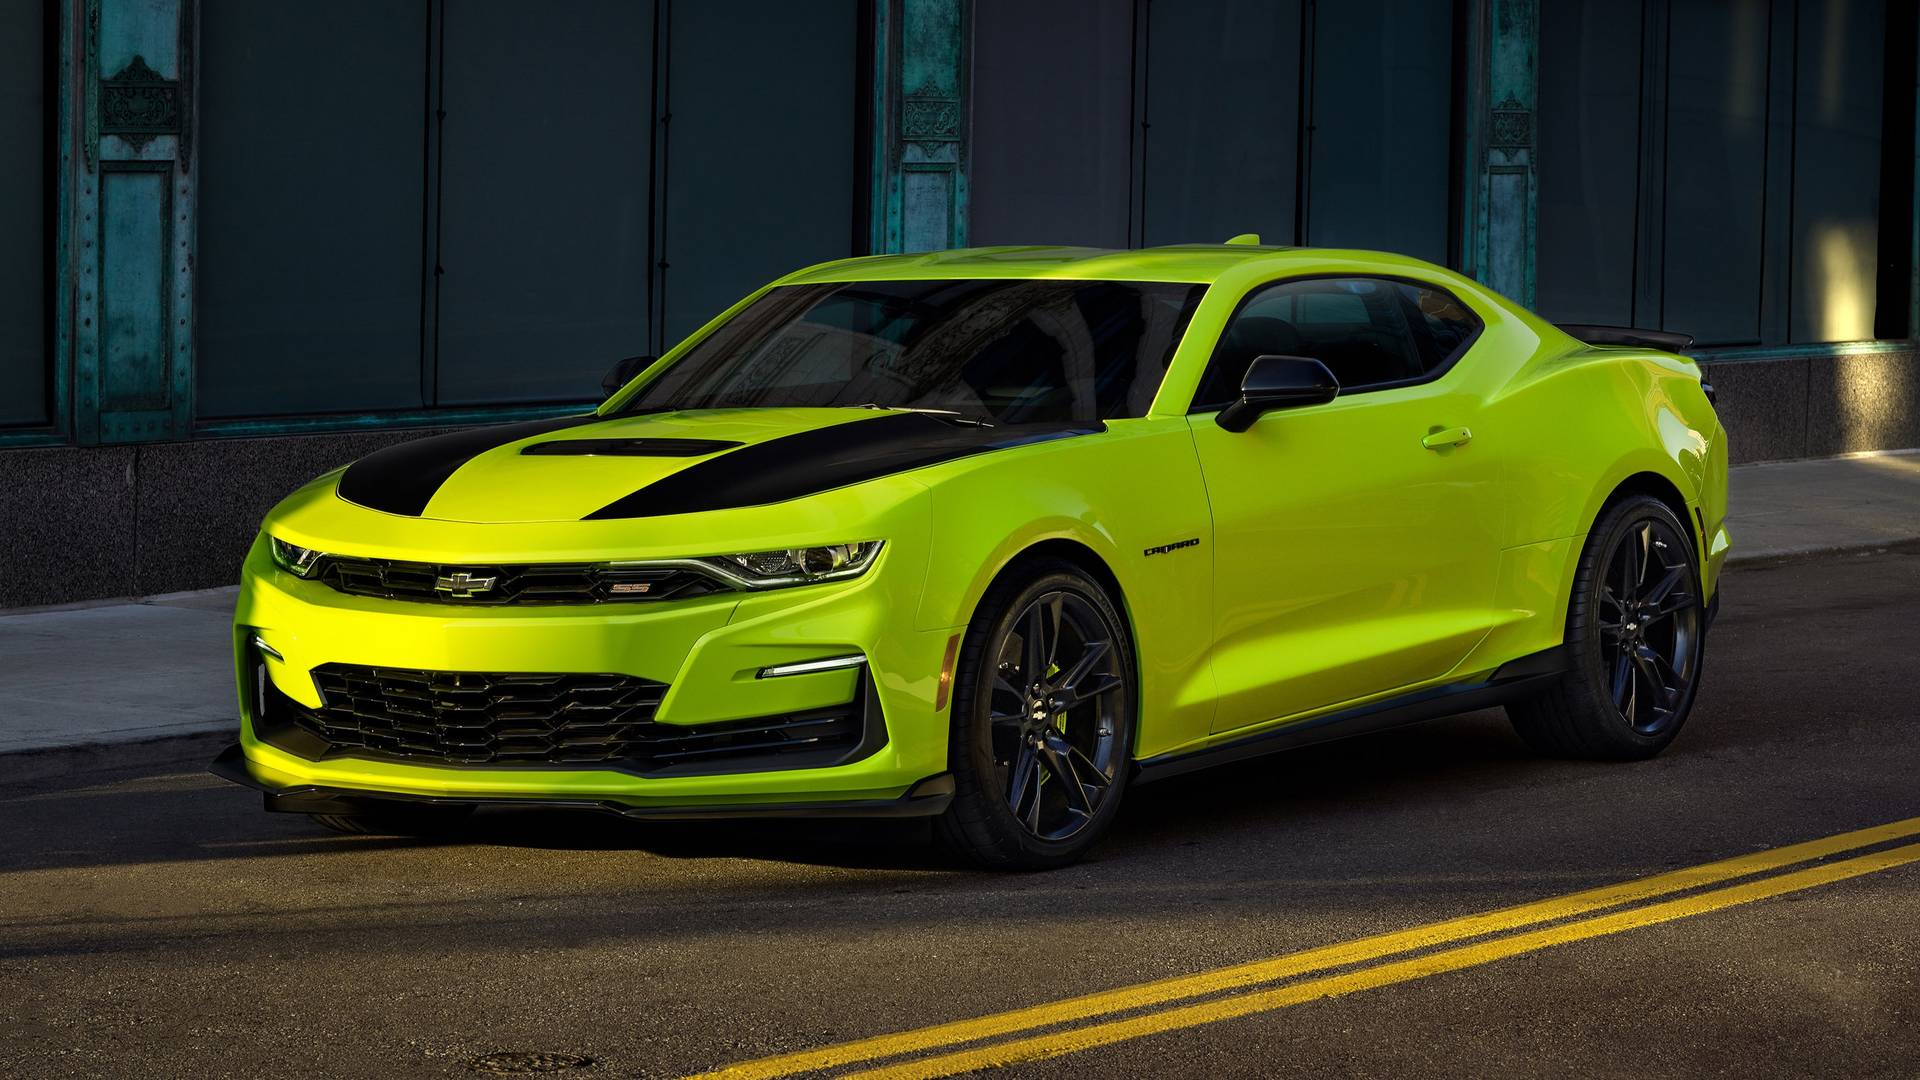 2019 Chevrolet Camaro Leasing near Orland Park, IL